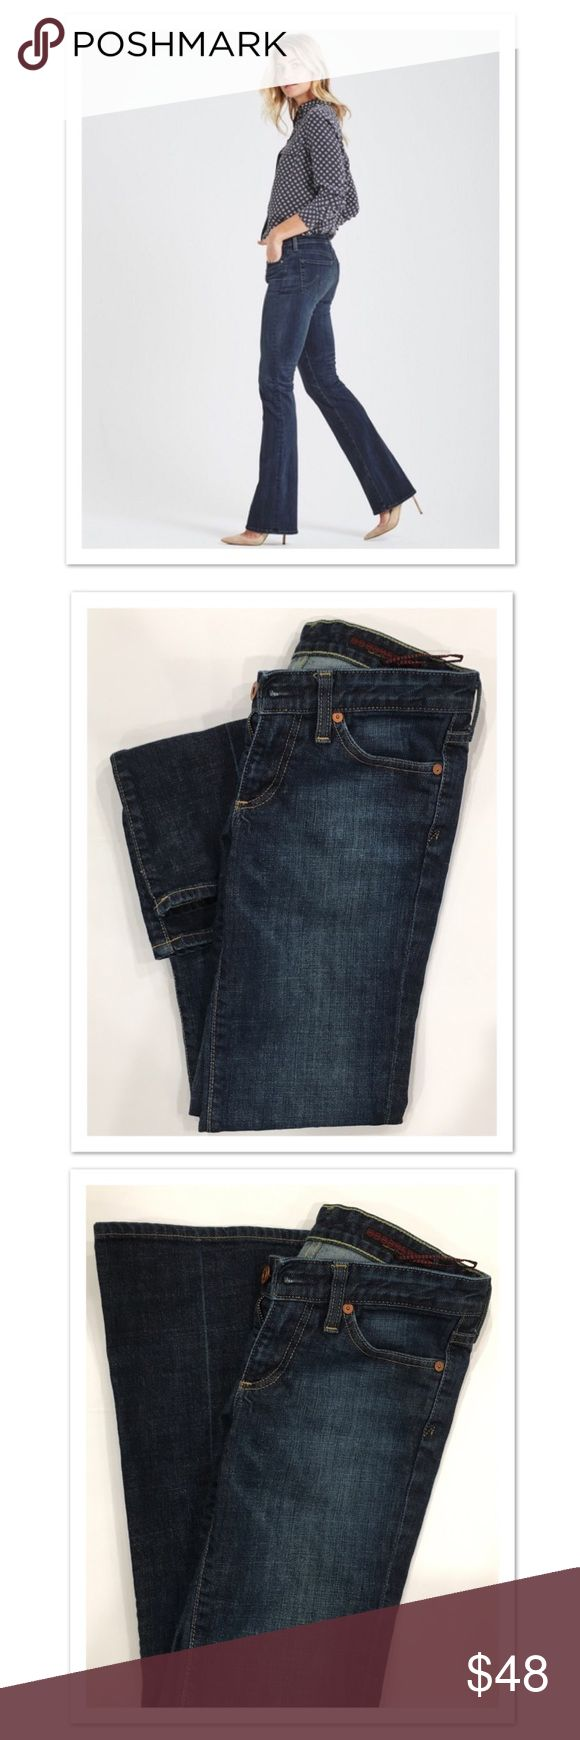 "AG Adriano Goldschmied Bootcut Jeans Adriano Goldschmied Bootcut Jeans  EXCELLENT CONDITION!  Style: The Club  Inseam: approx 31"" Rise: approx 7"" Ag Adriano Goldschmied Jeans Boot Cut"